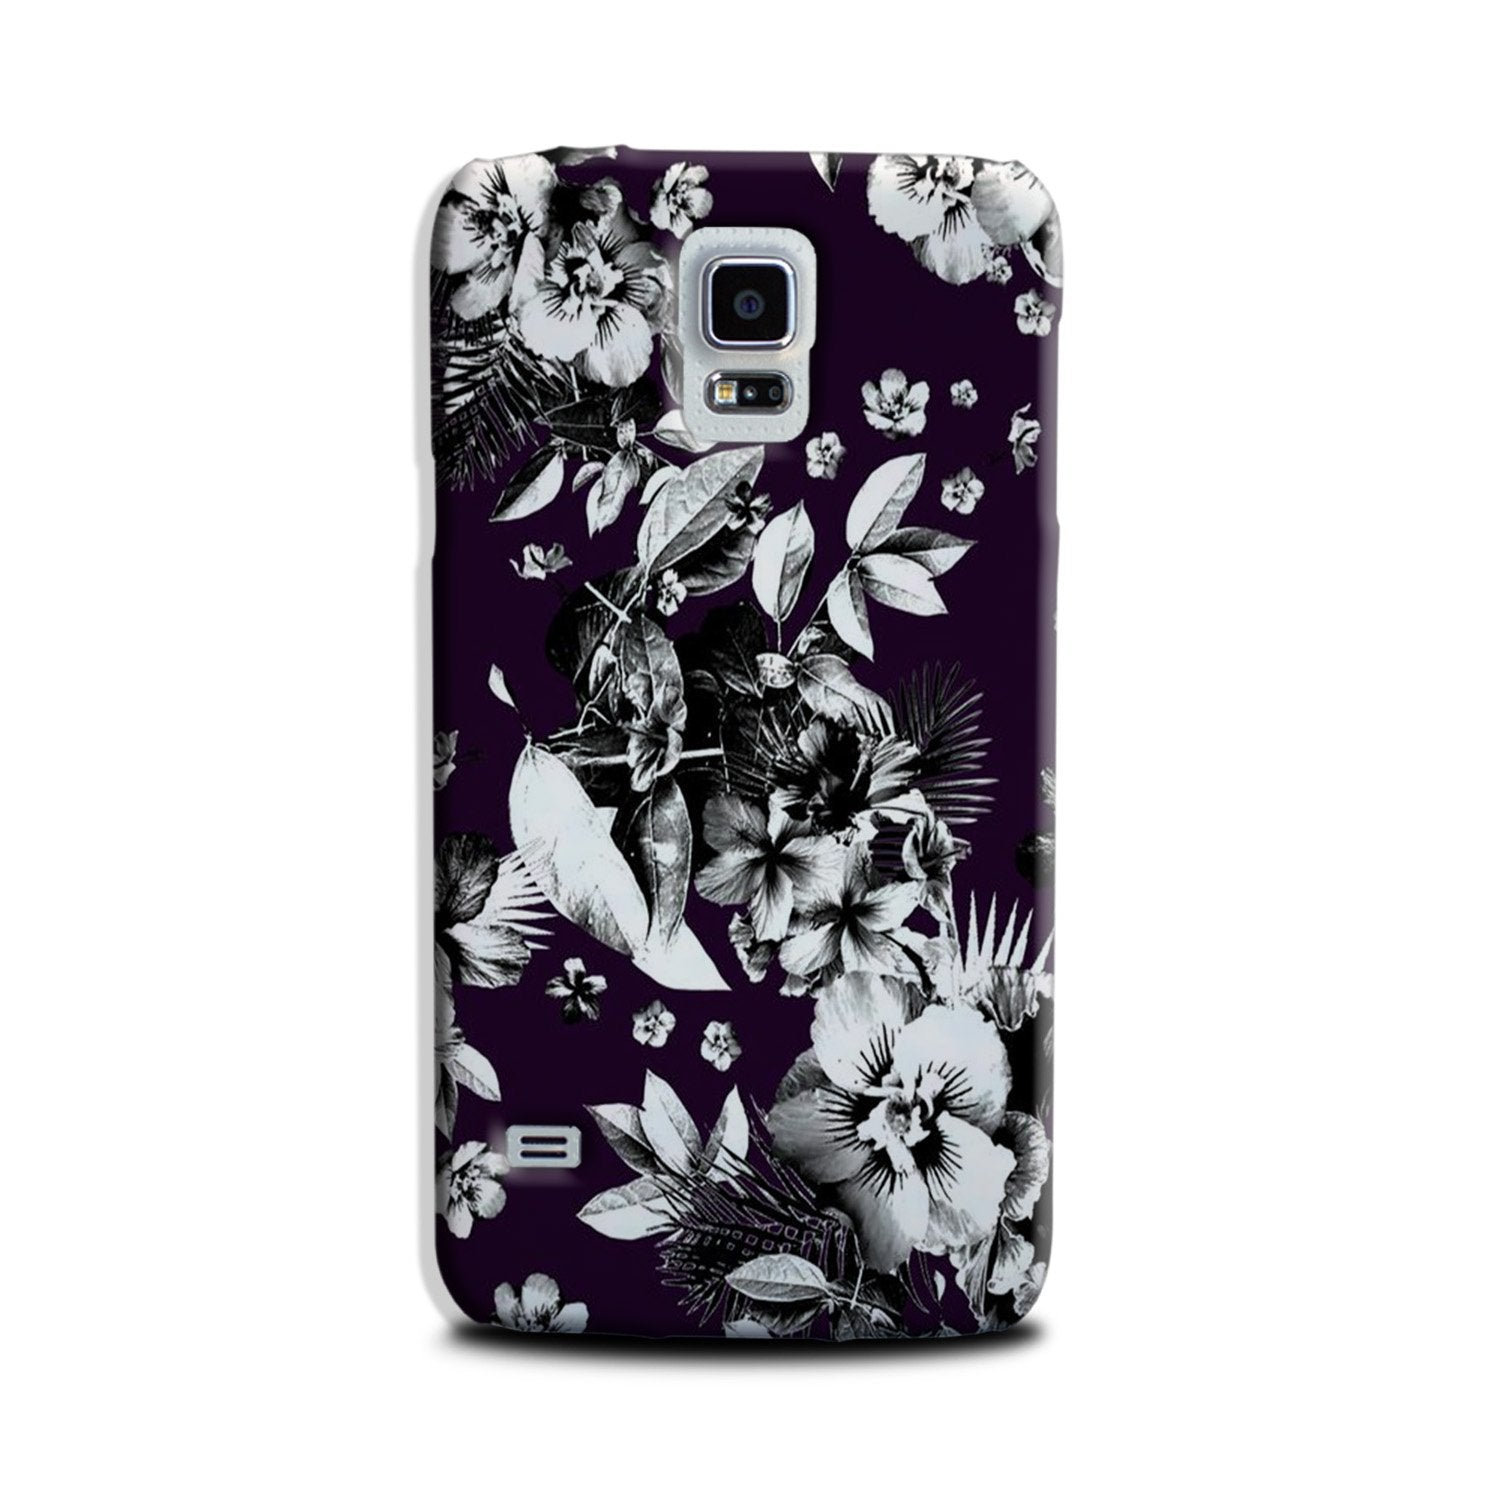 white flowers Case for Galaxy S5